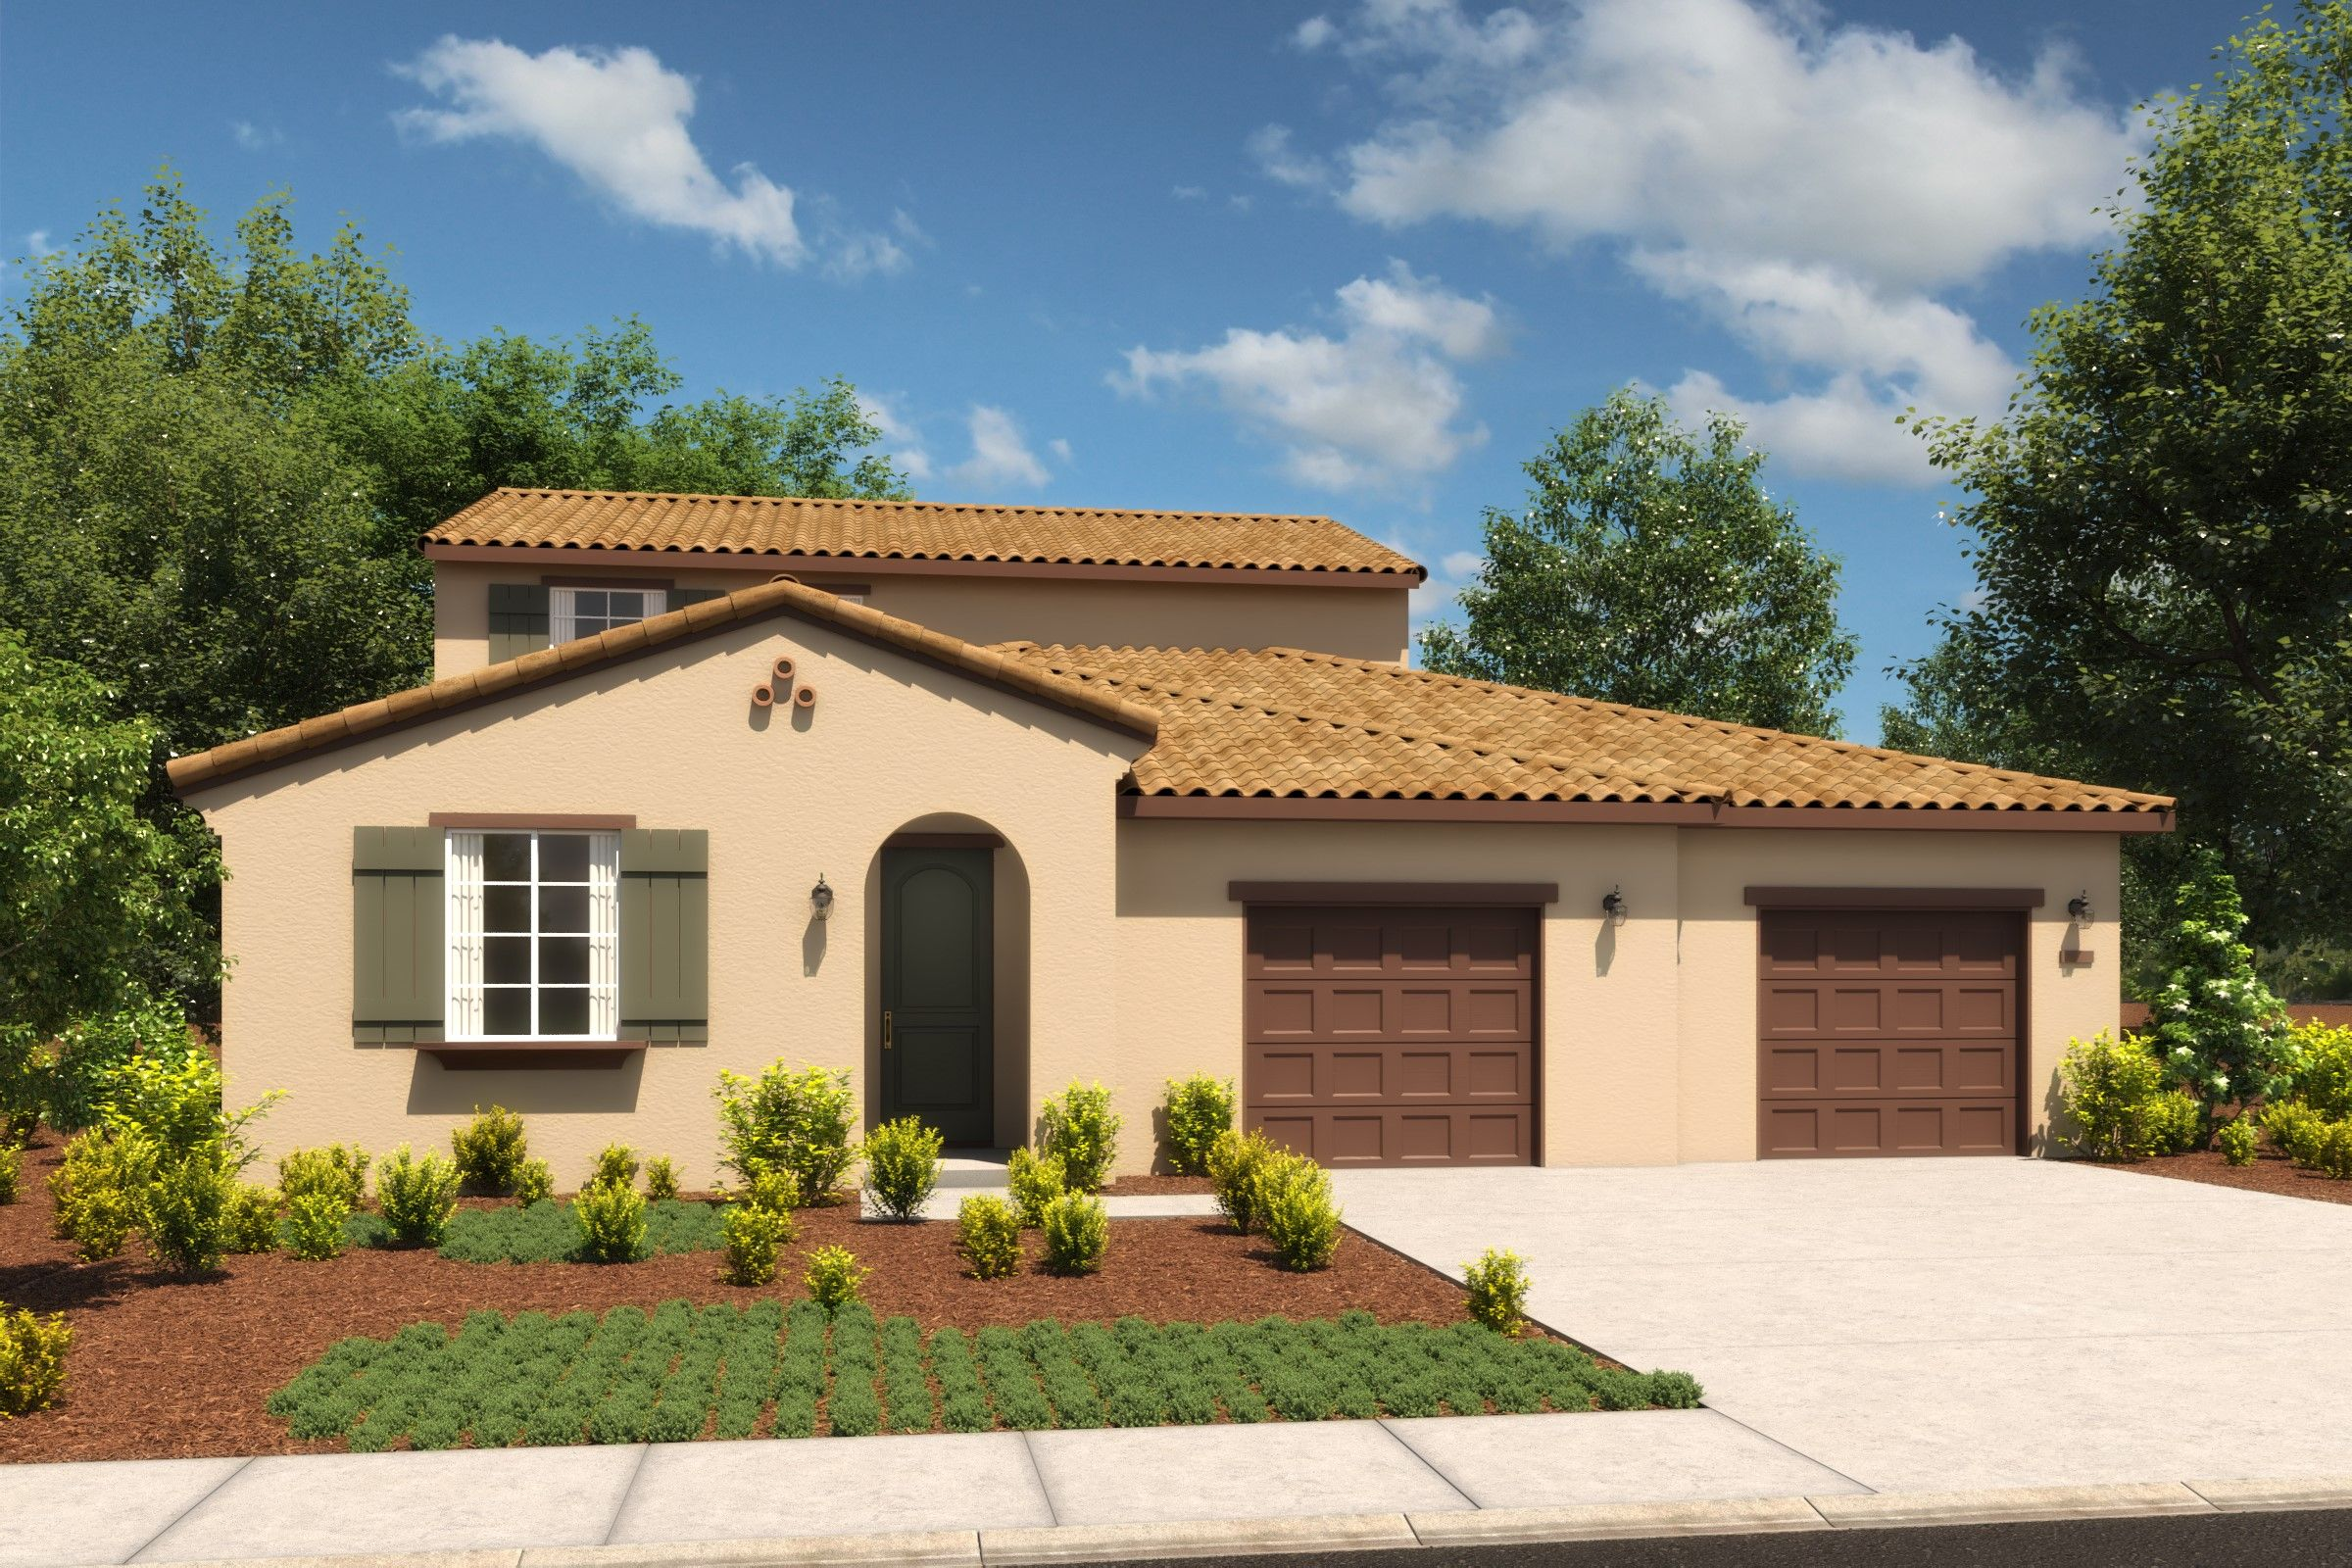 Single Family for Active at Riverview At Monterra - Rose 4588 Goode Street Antioch, California 94531 United States